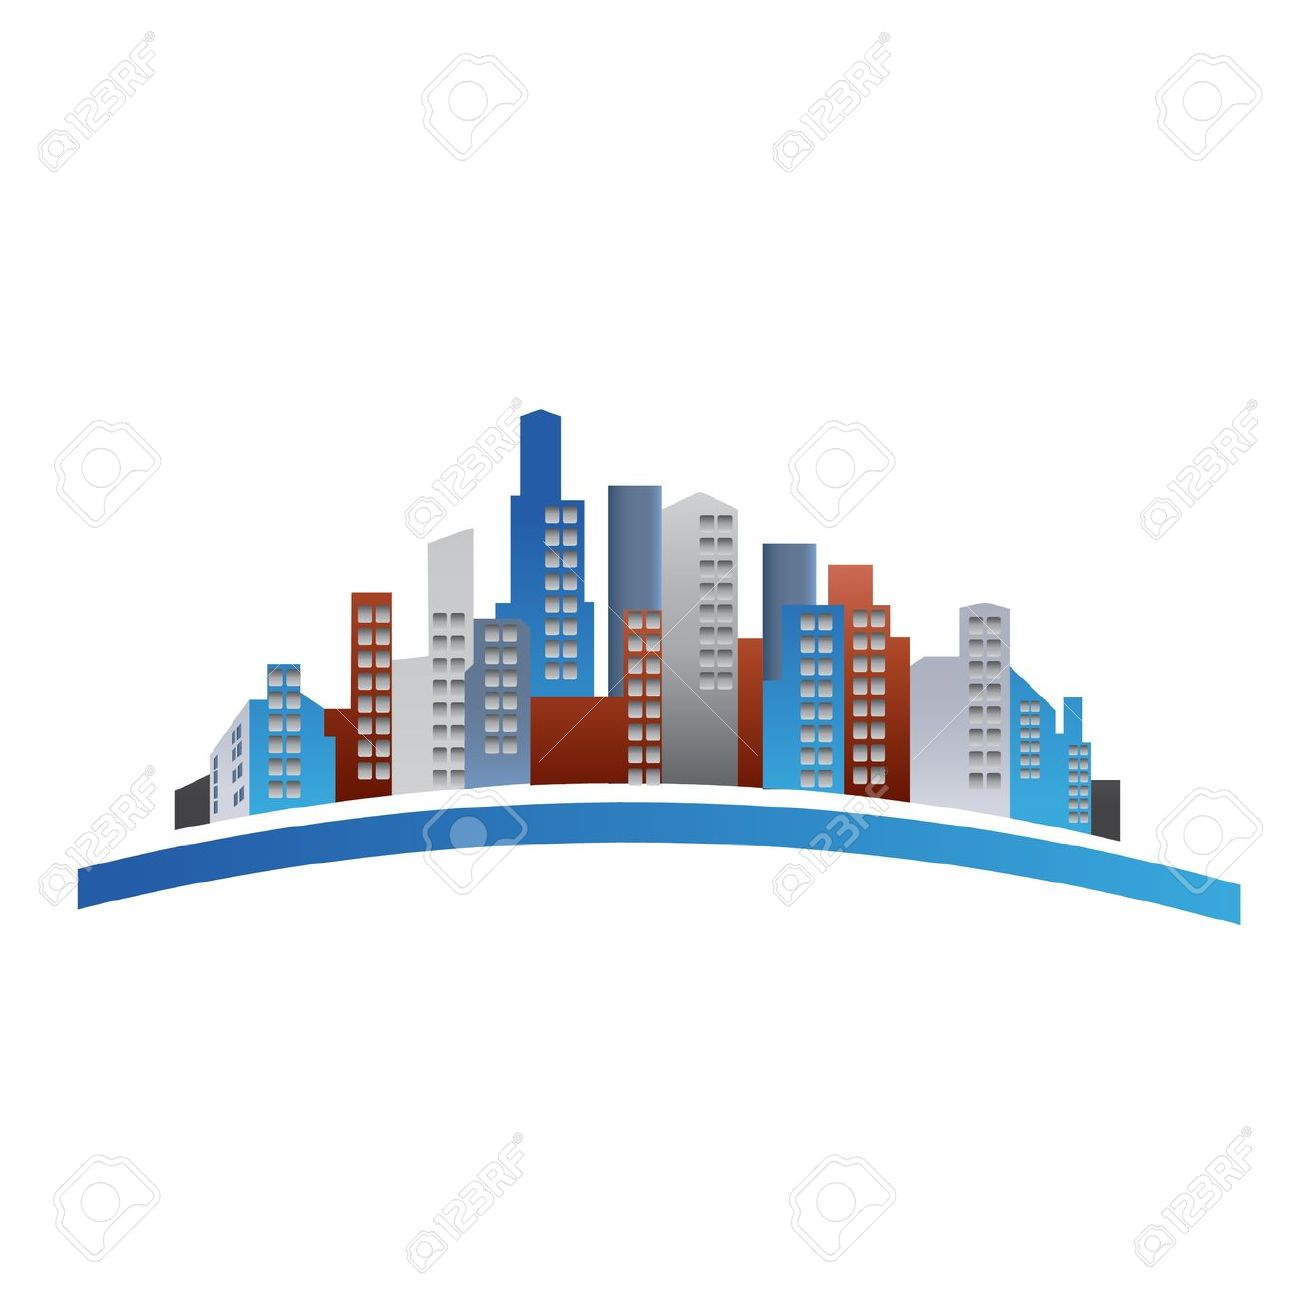 Building logo cliparts jpg freeuse download Buildings Logo Royalty Free Cliparts, Vectors, And Stock ... jpg freeuse download